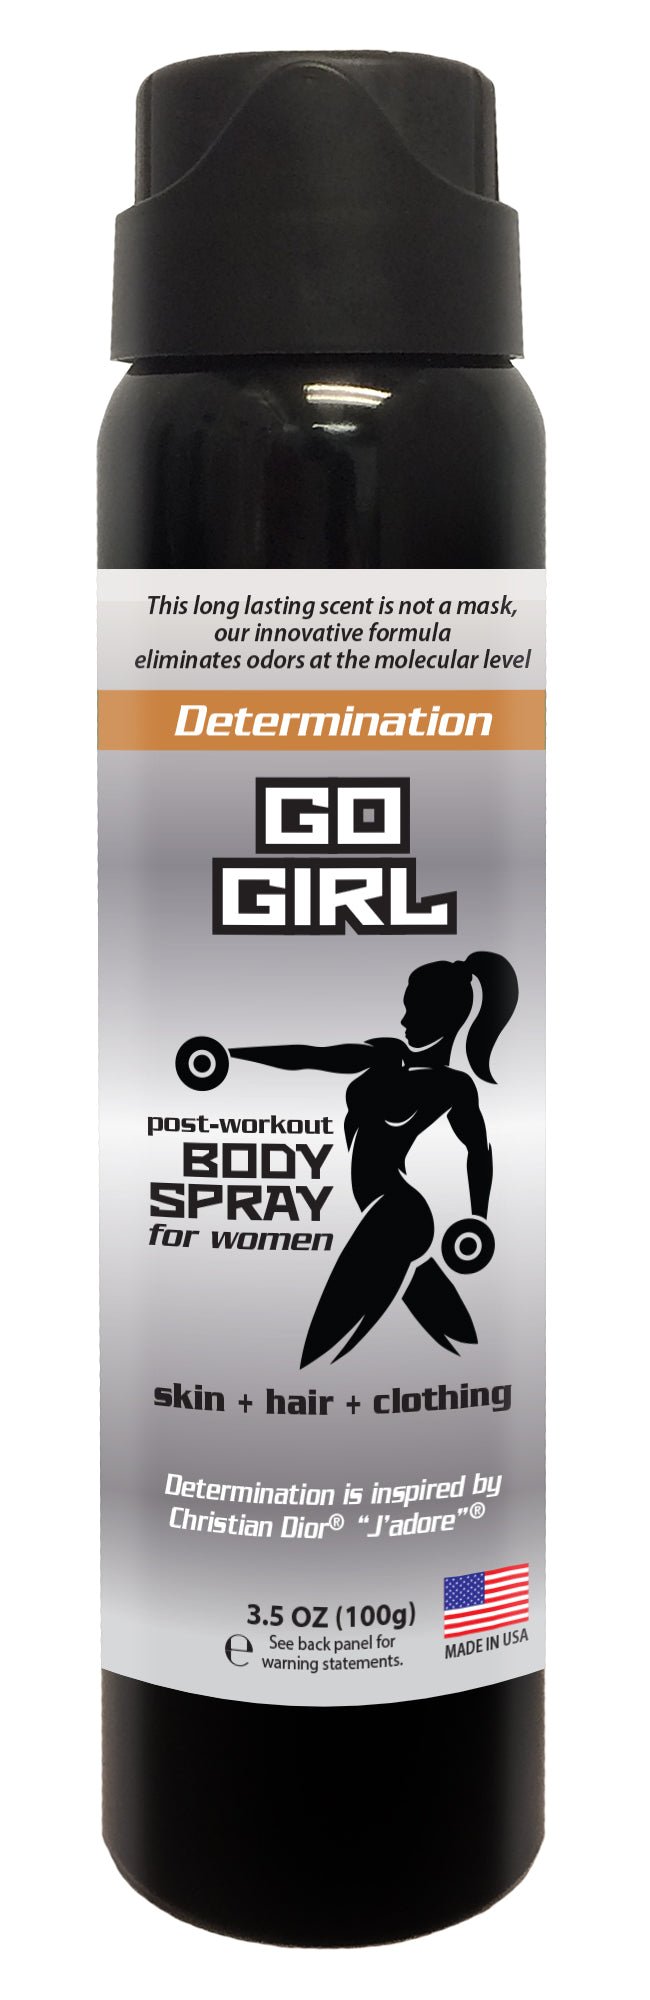 Go Girl - Women's Post Workout Body Spray 3.5 oz (DETERMINATION)